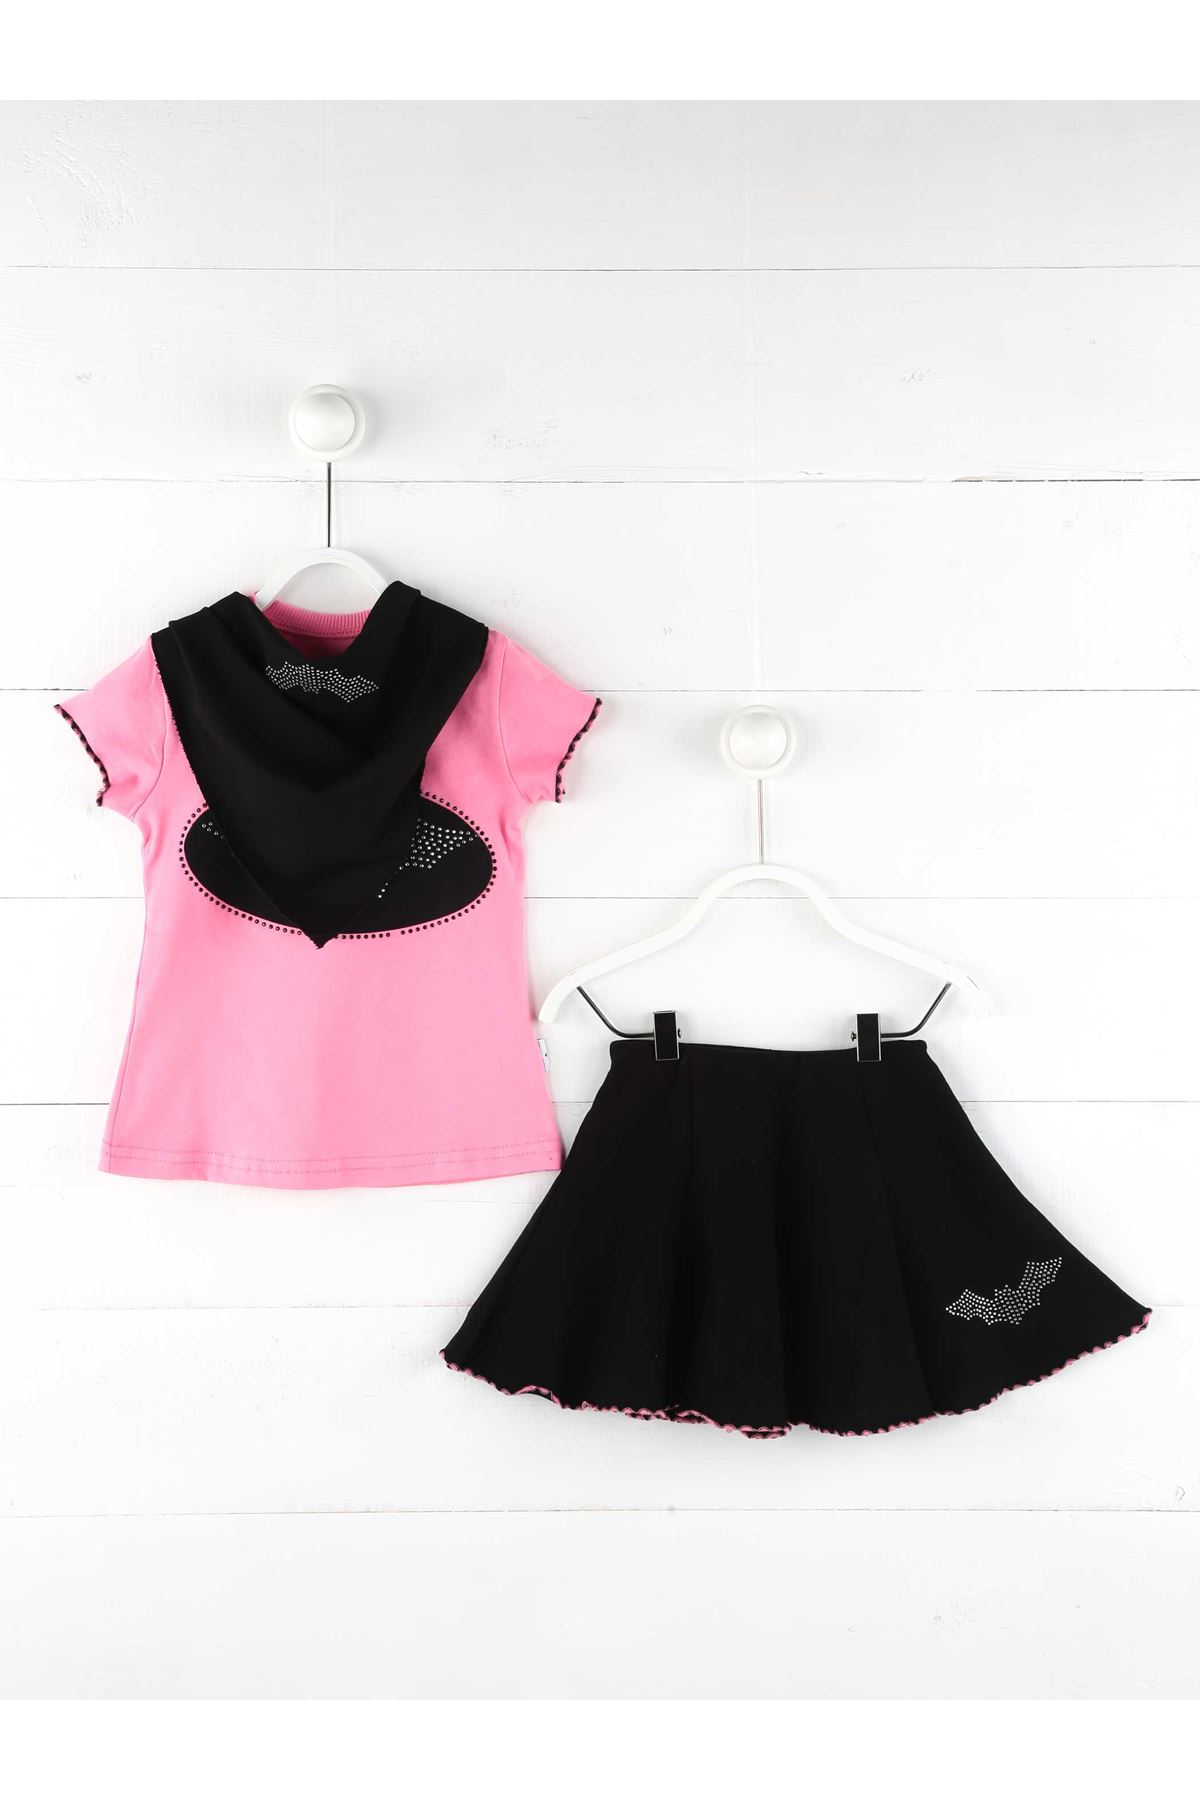 Girls skirt T-shirt 2 Sets Casual Model Stylish Girls Kids Cotton Clothing Sets pink Black suit cute clothing style